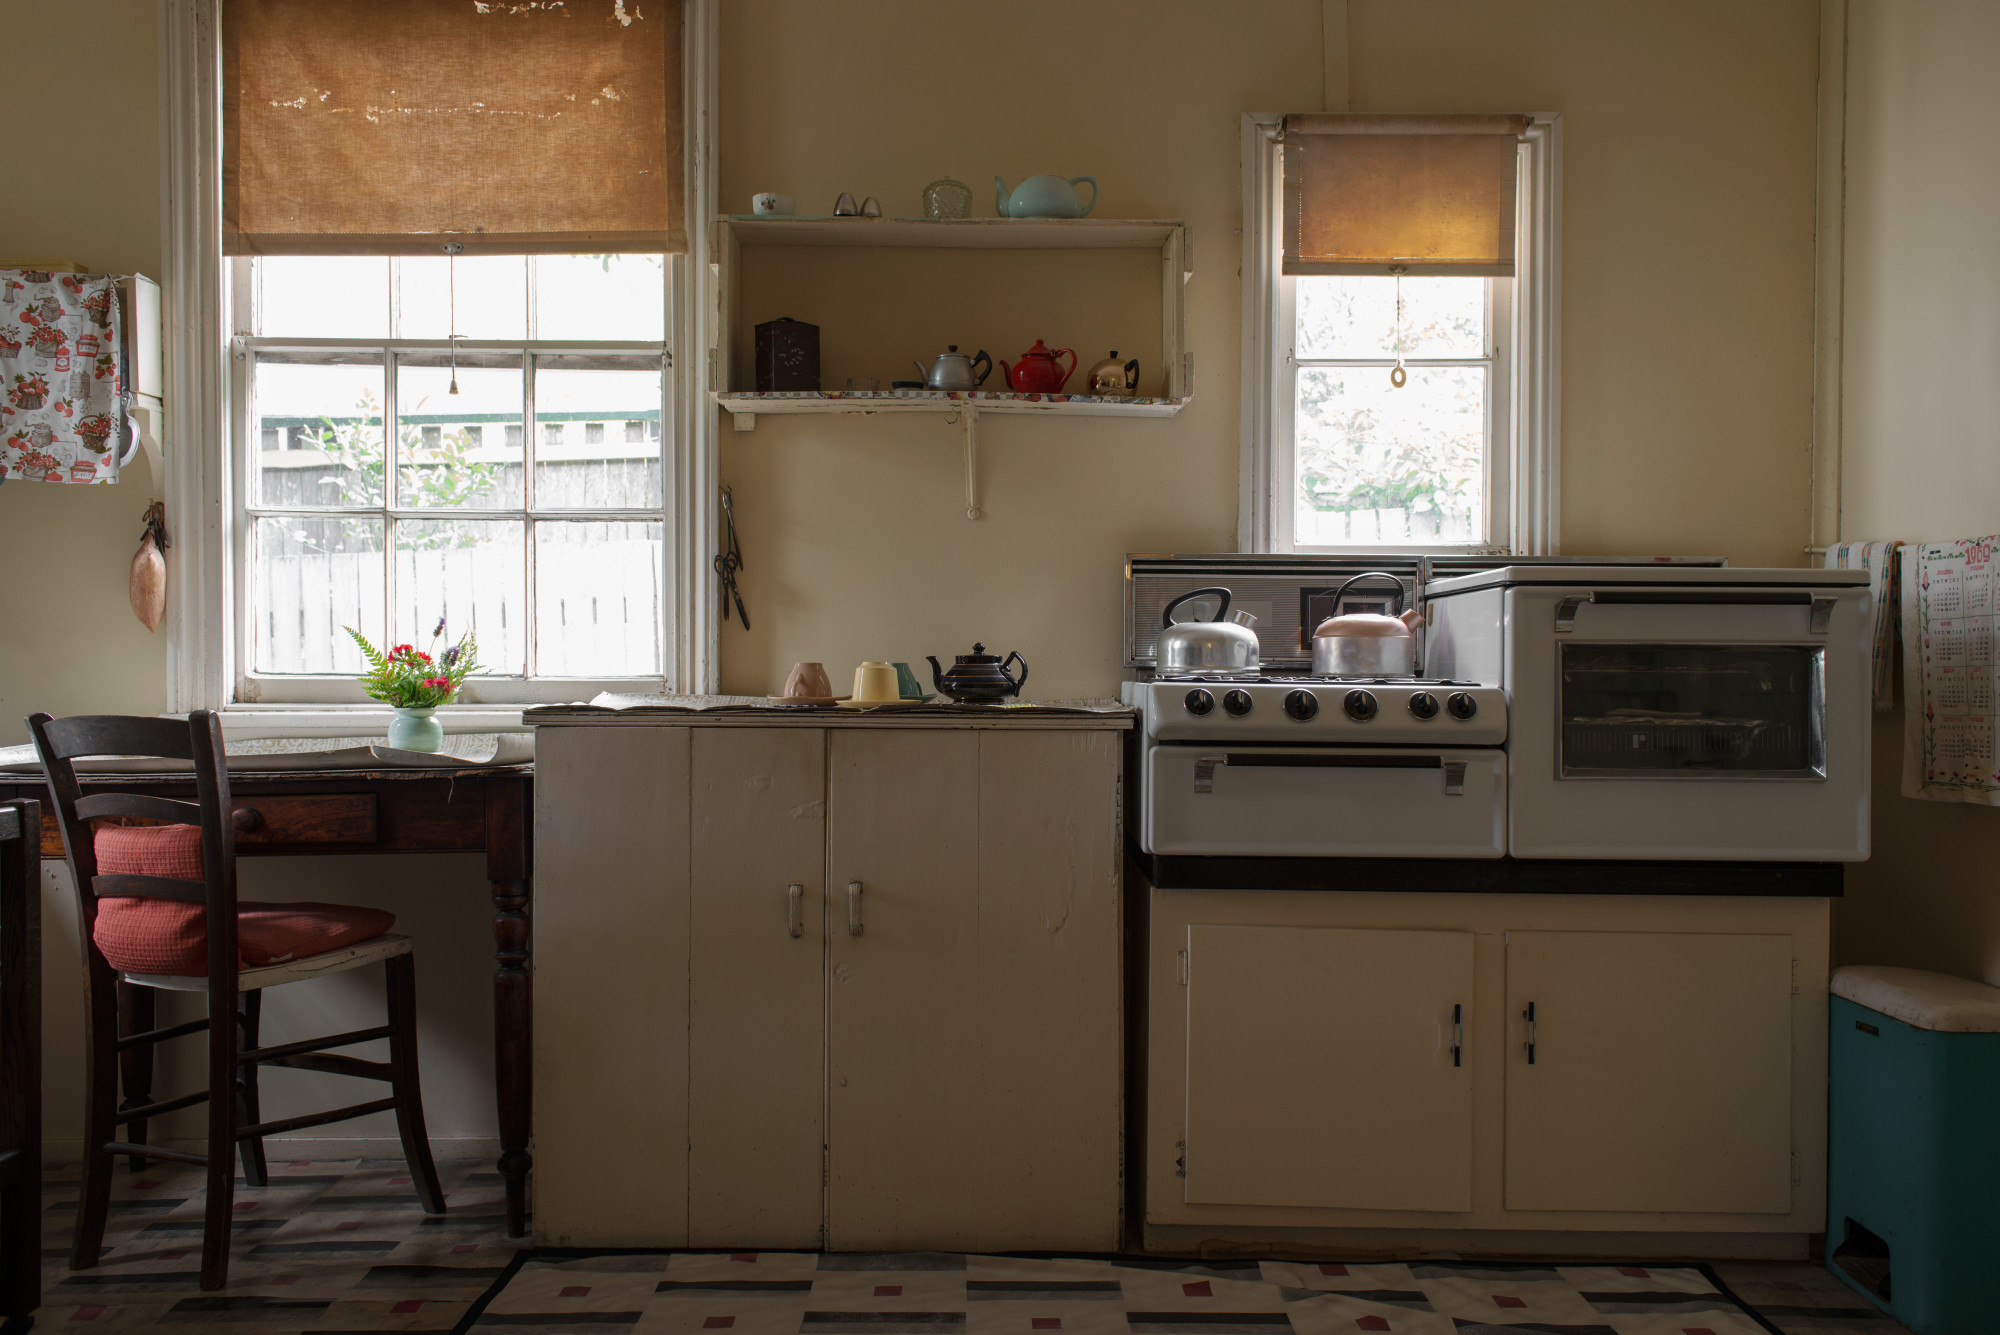 Benchtop and cupboards below curtained windows in older style kitchen.